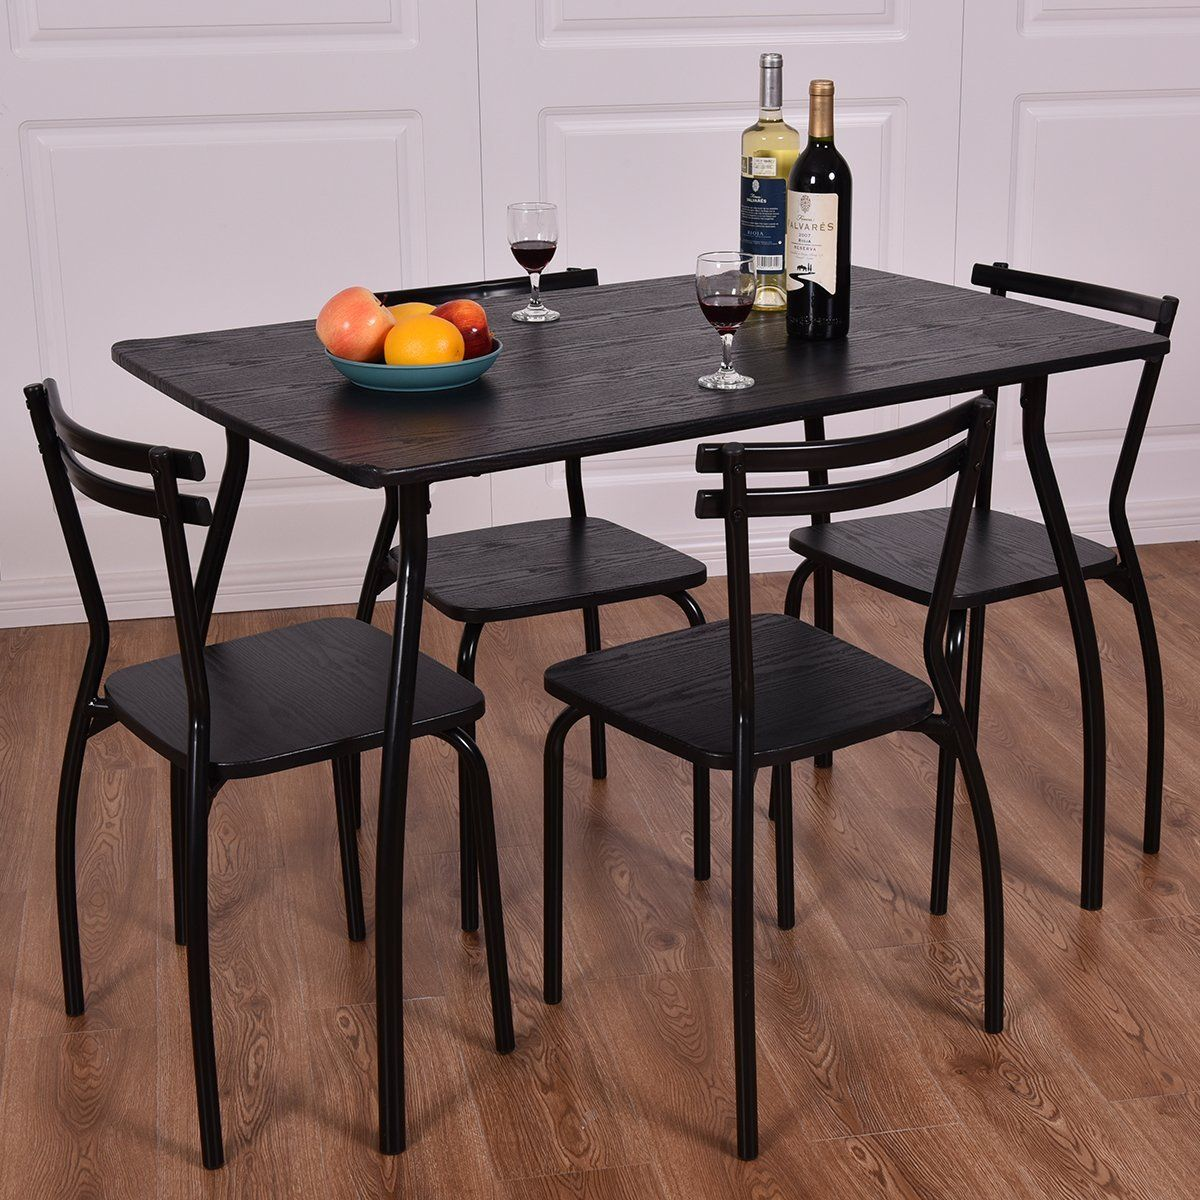 Amazon Com Giantex 5 Piece Dining Set Table And 4 Chairs Home